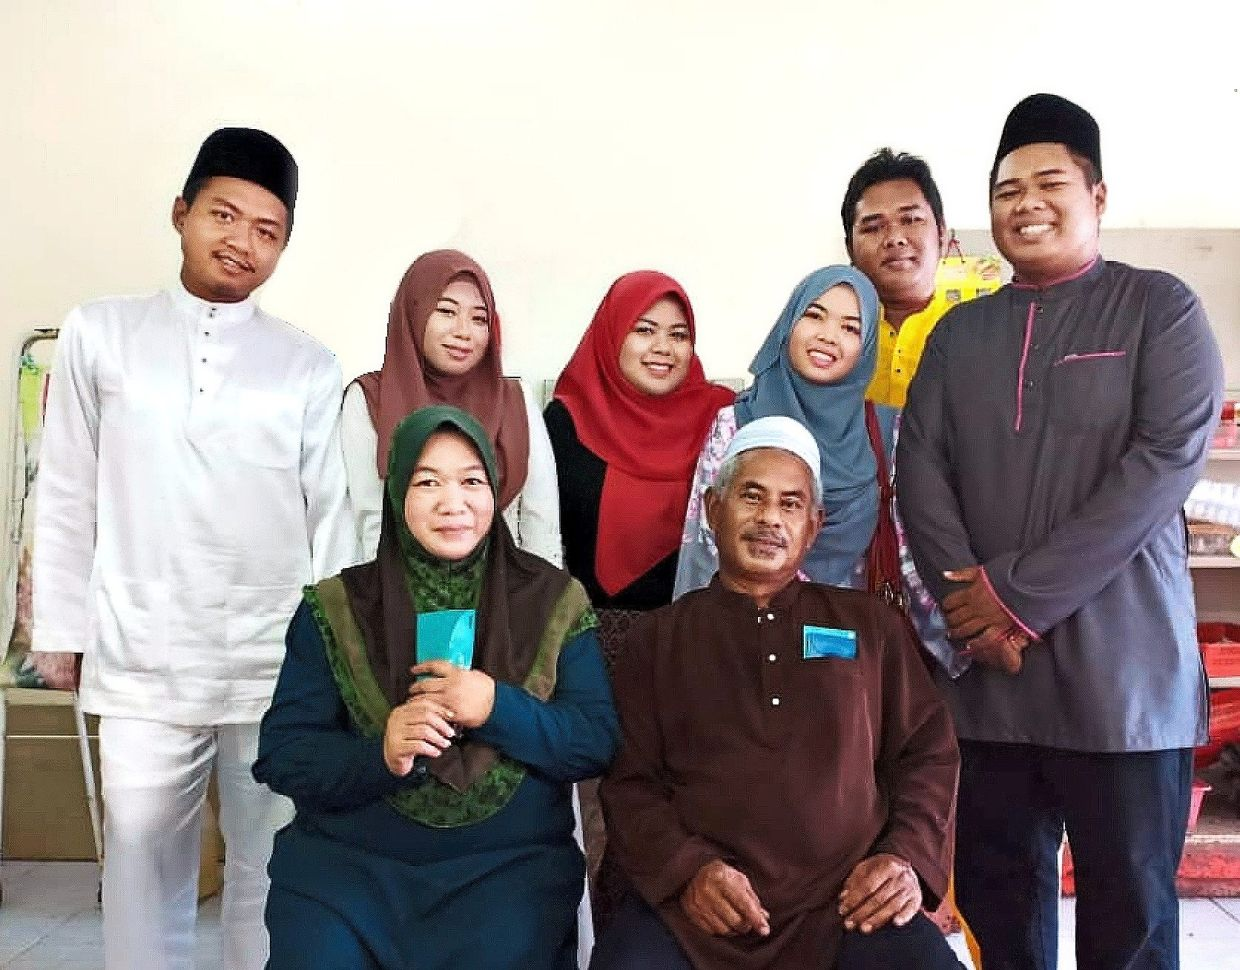 Ain Nadjwa (in red) with her family during Hari Raya in Pekan last year. Photo: Ain Nadjwa Idzwanna Akasah